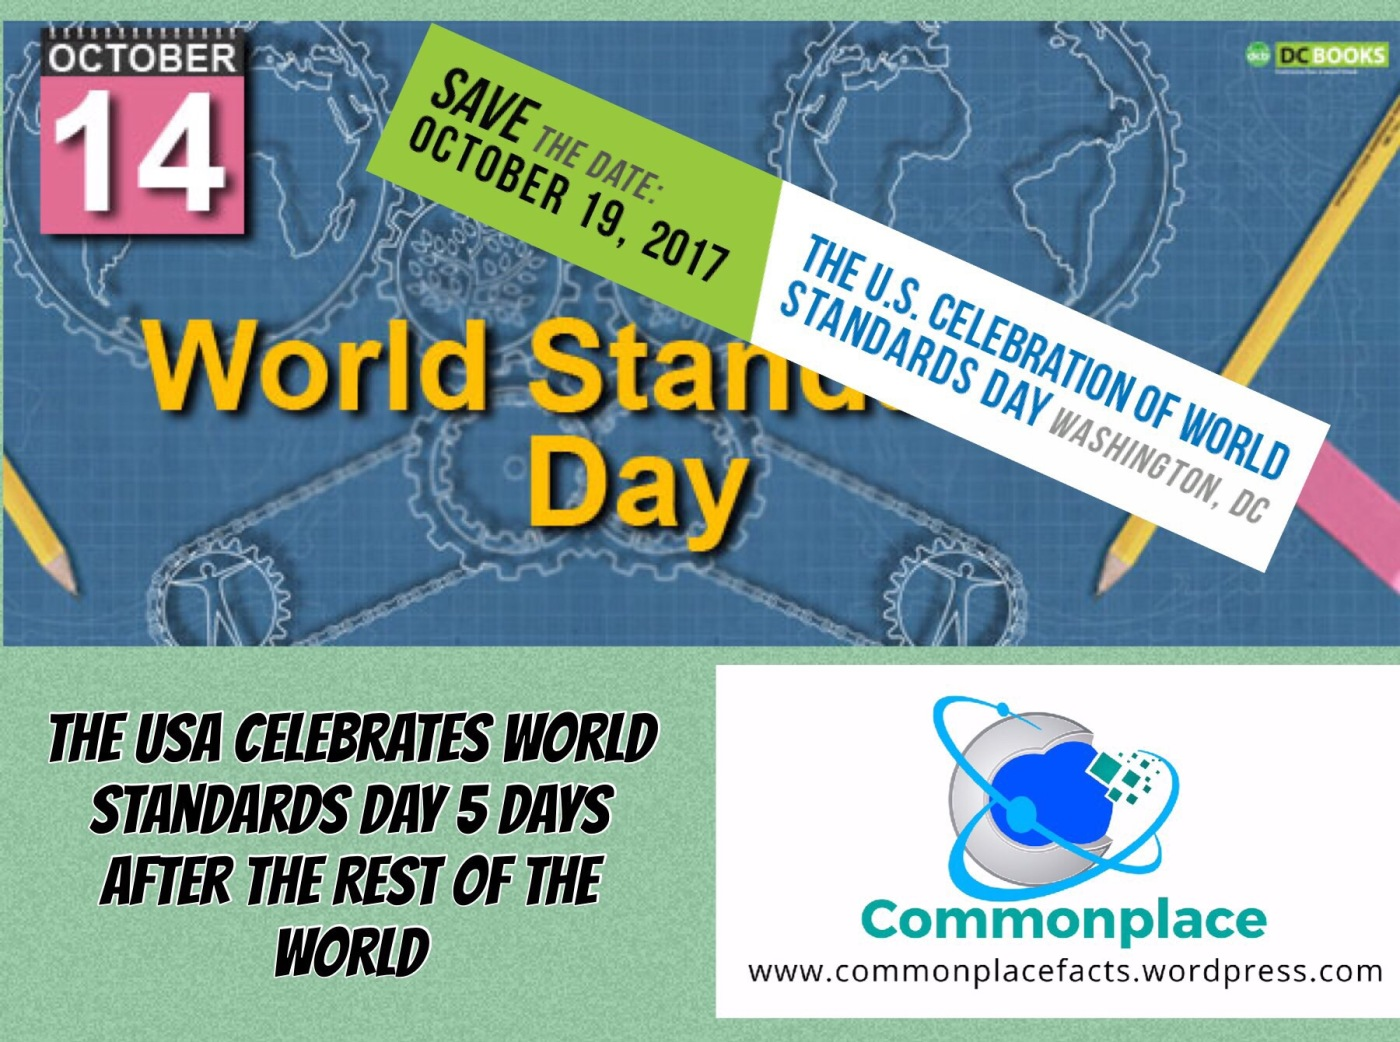 #worldstandardsday #nonconformity #funfacts